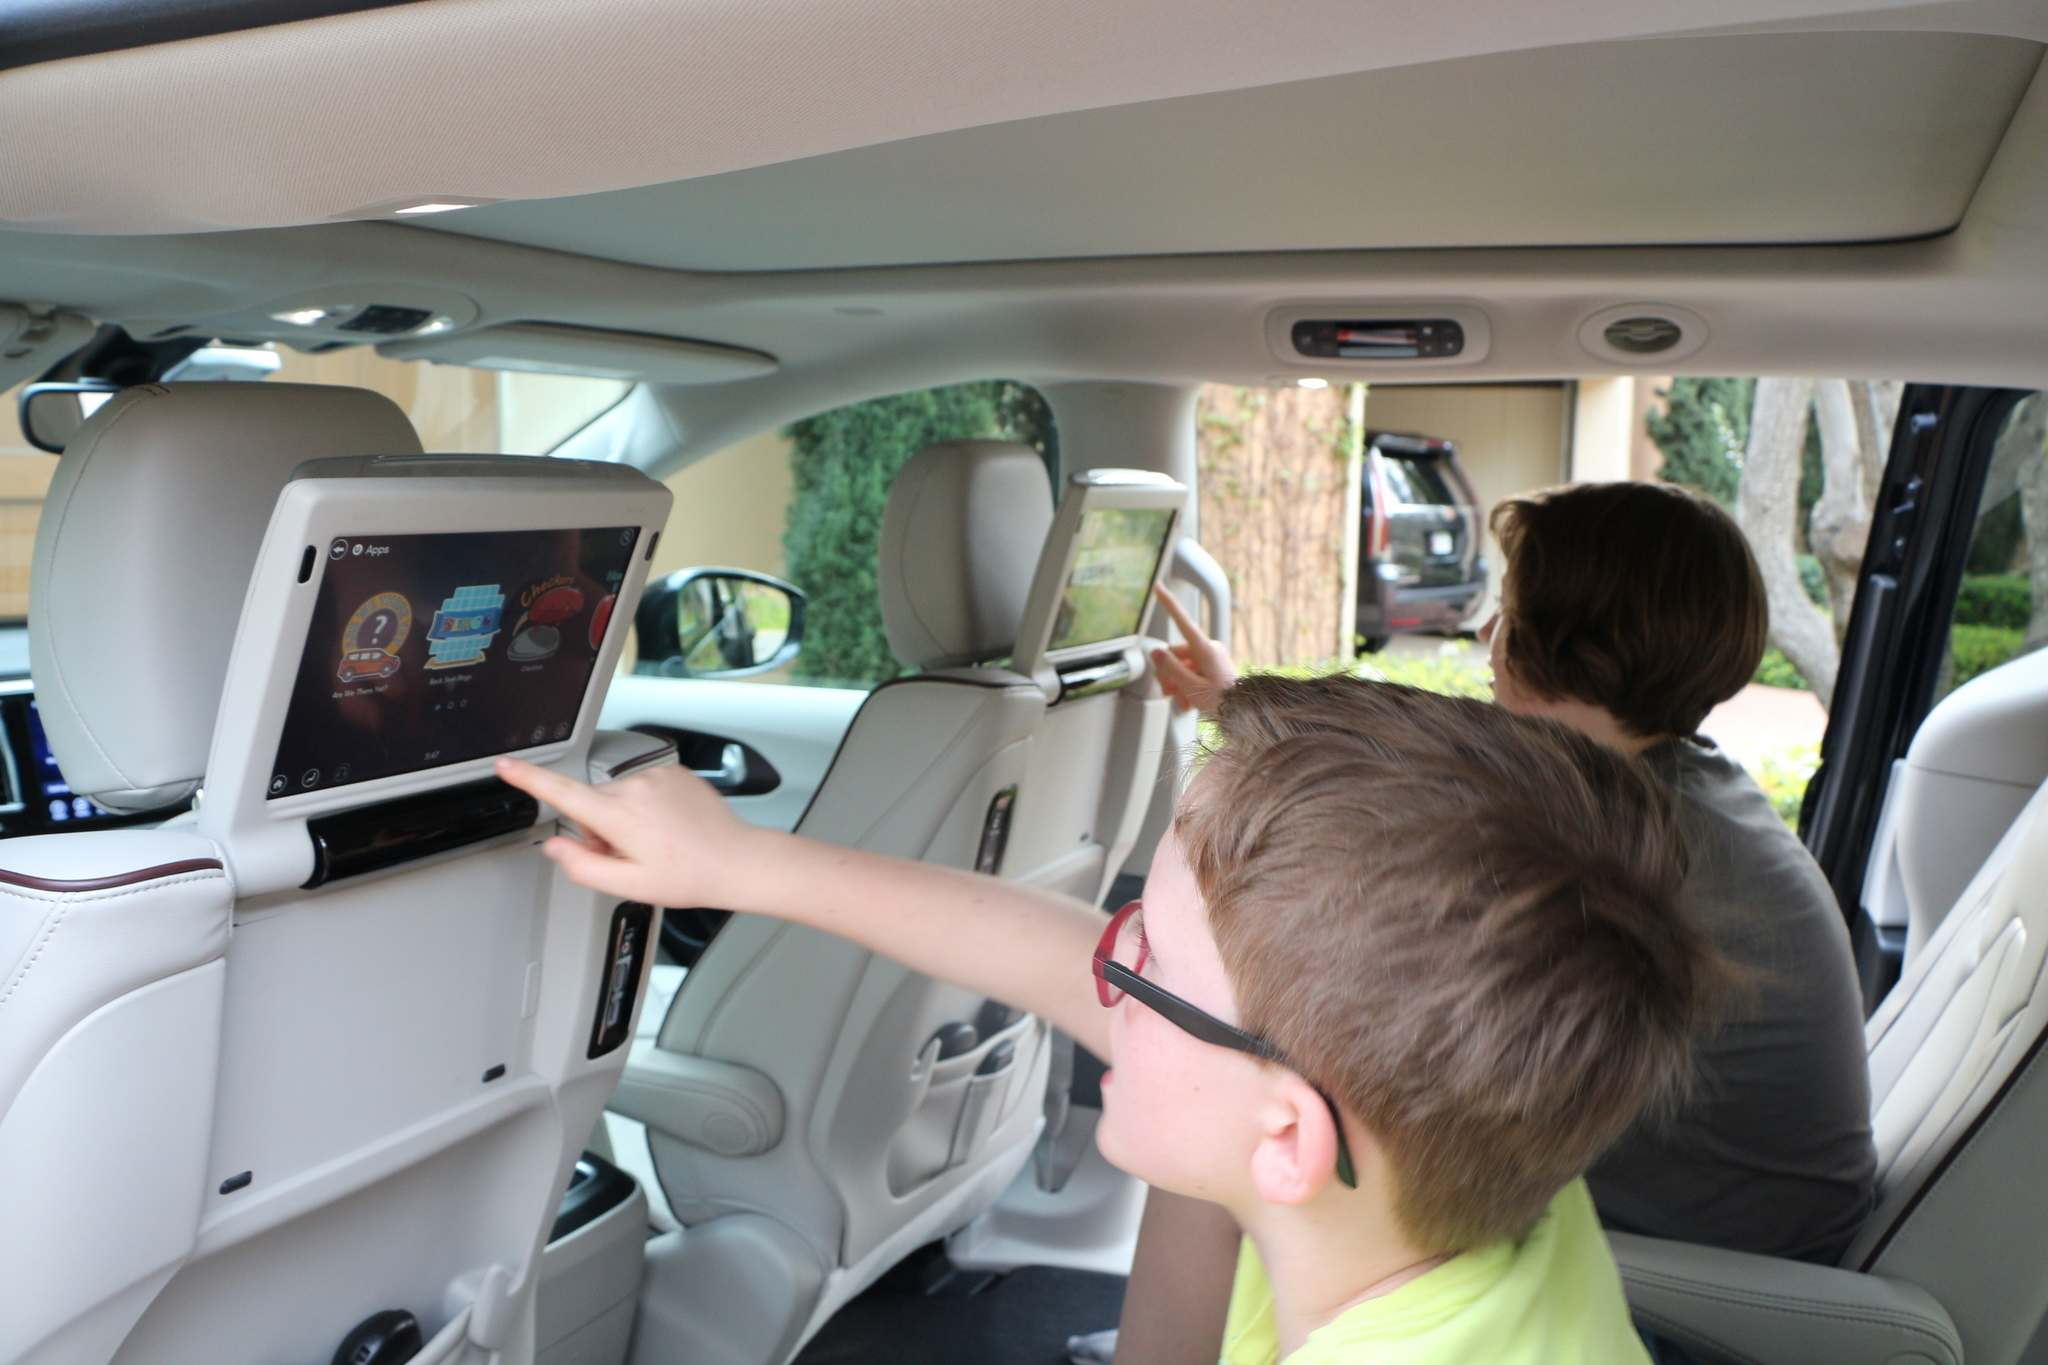 HARRY PEGG / WINNIPEG FREE PRESSInfotainment options include 10-inch touchscreens mounted on the rear of the front seats,